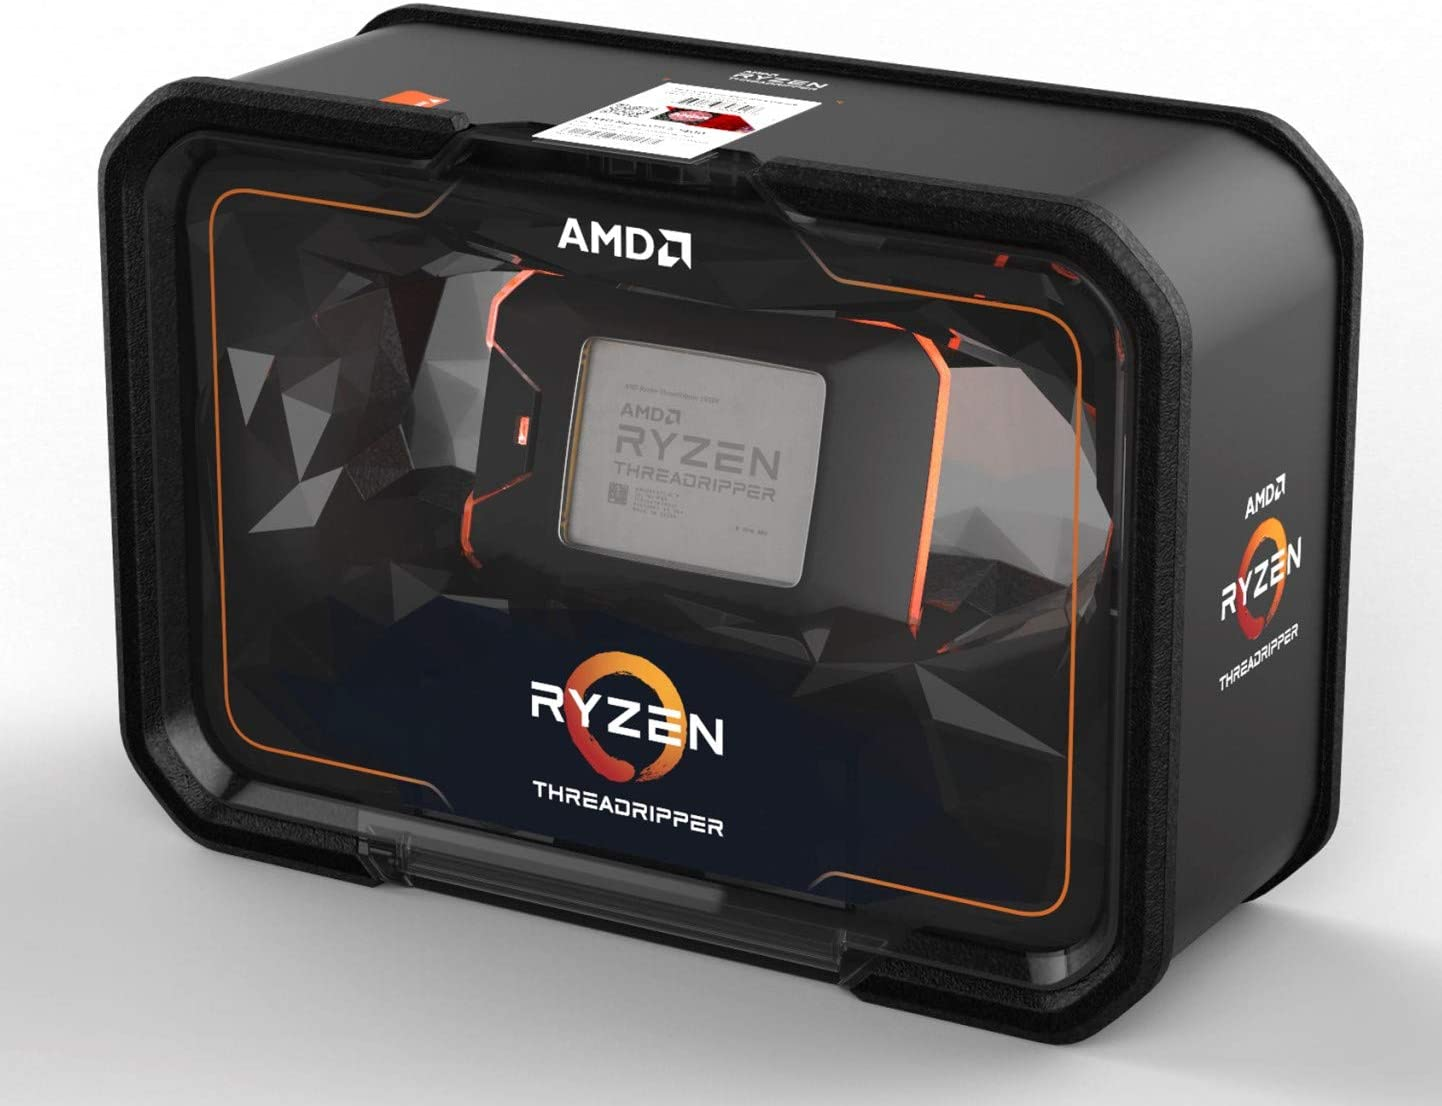 Amazon Com Amd Ryzen Threadripper 2950x Processor Yd295xa8afwof Computers Accessories